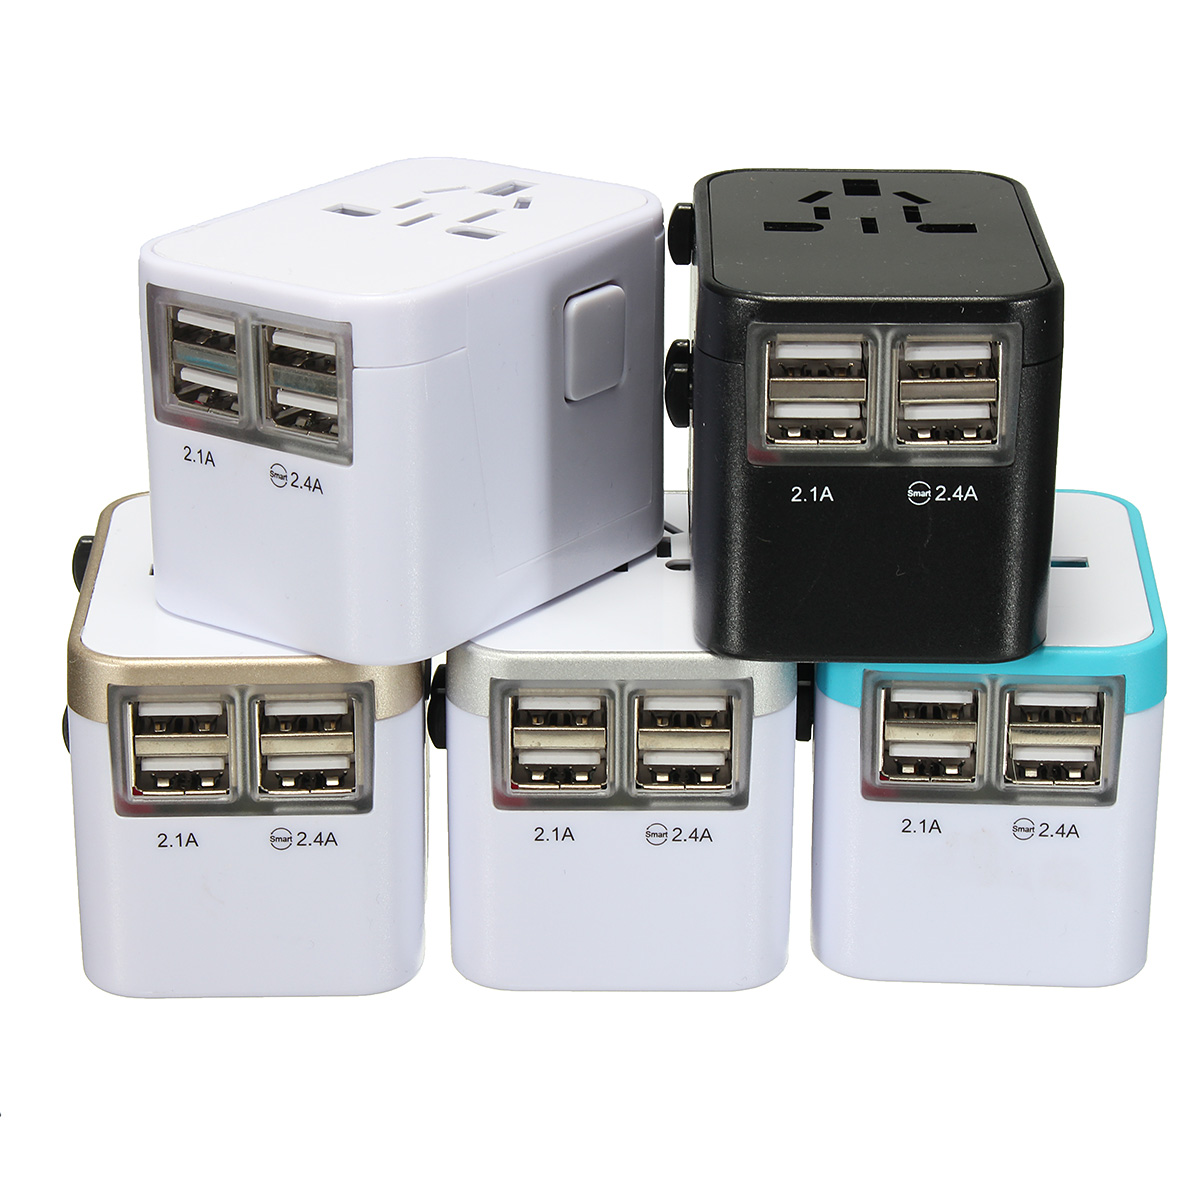 All in One Universal International Plug Adapter 4USB Ports World Travel AC Power Charger US UK AU EU